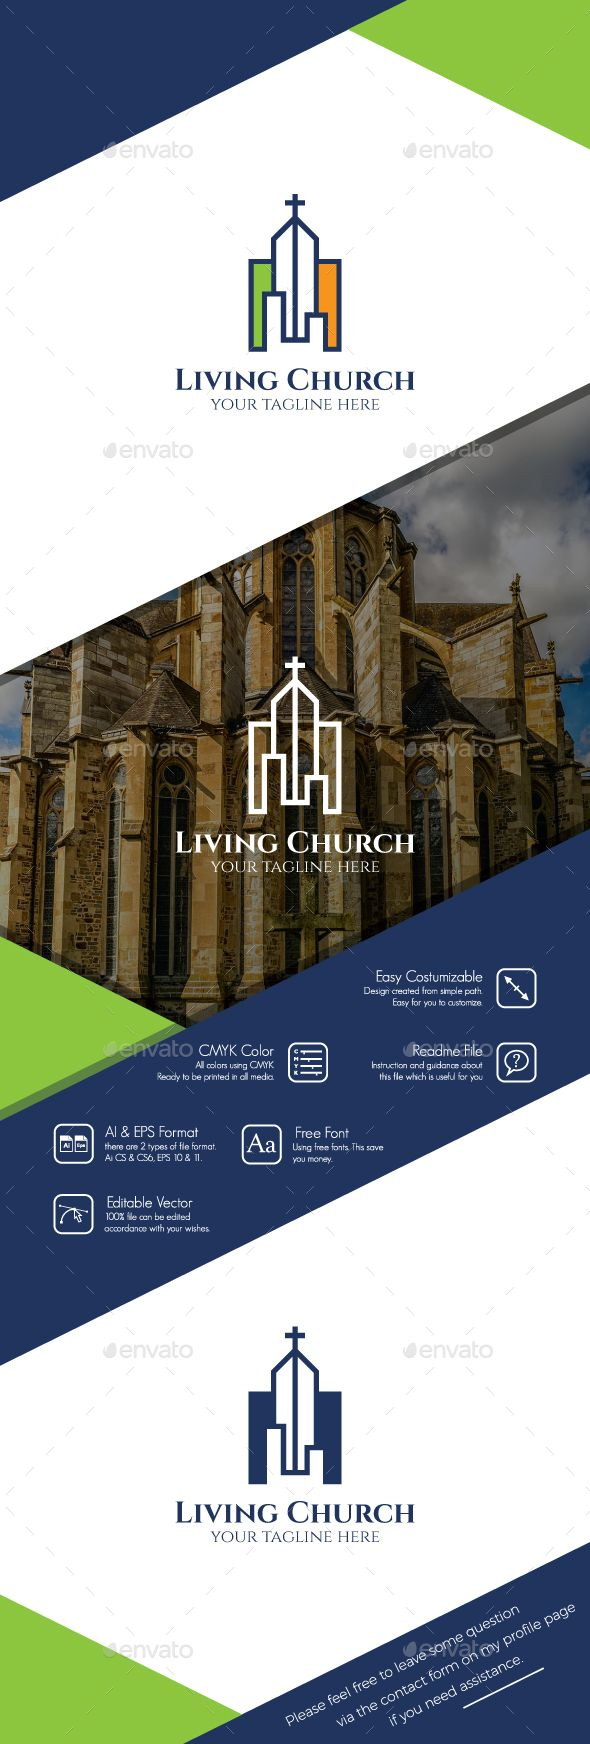 best images about top church flyer template living church logo